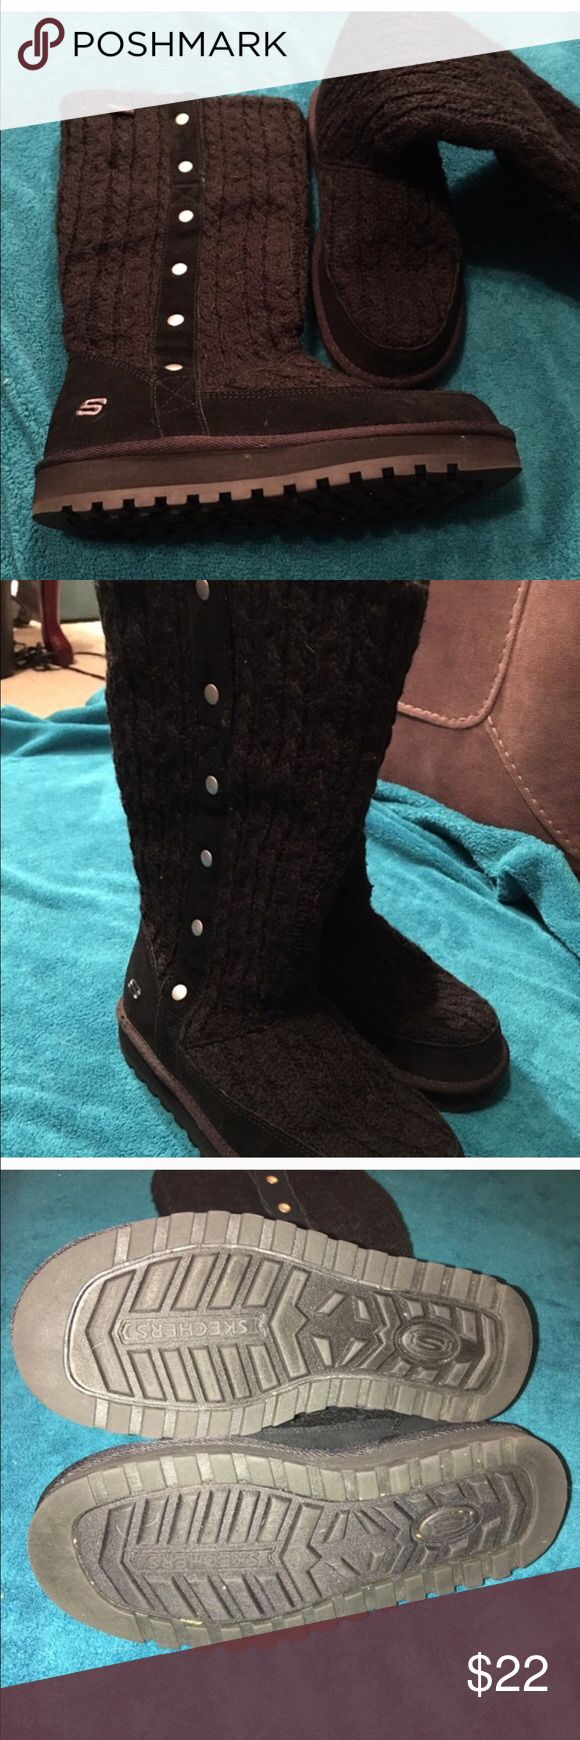 Skechers winter boots Knit type black boots. Super warm. Worn maybe 3 times. Skechers Shoes Winter & Rain Boots